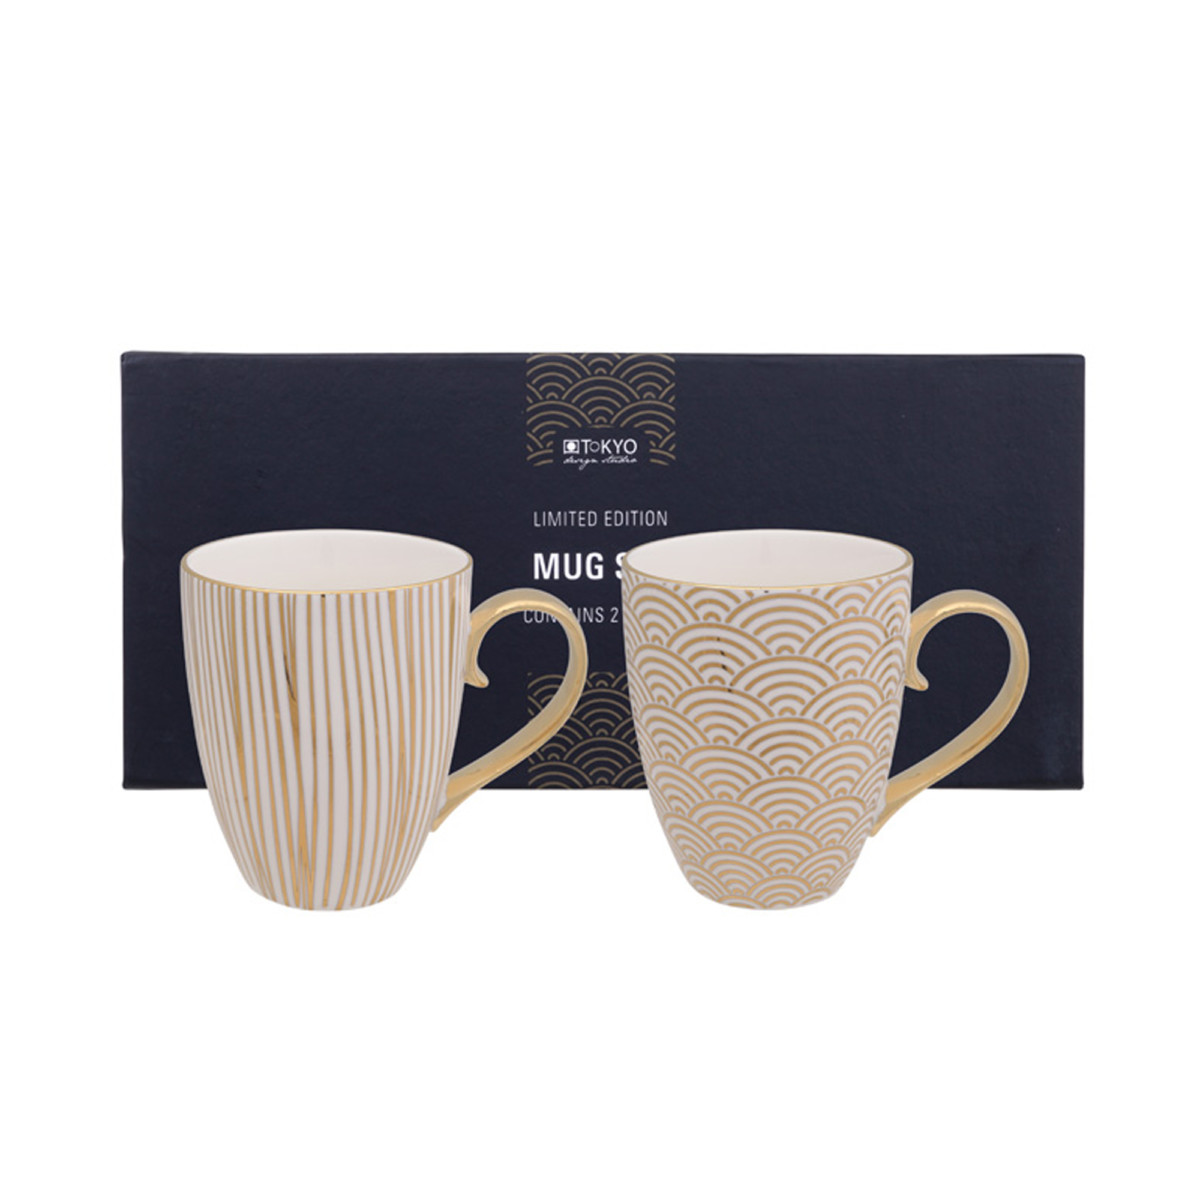 TOKYO DESIGN – LIMITED EDITION – NIPPON GOLD MUG SET 2PCS 380ML WAVE & LINES